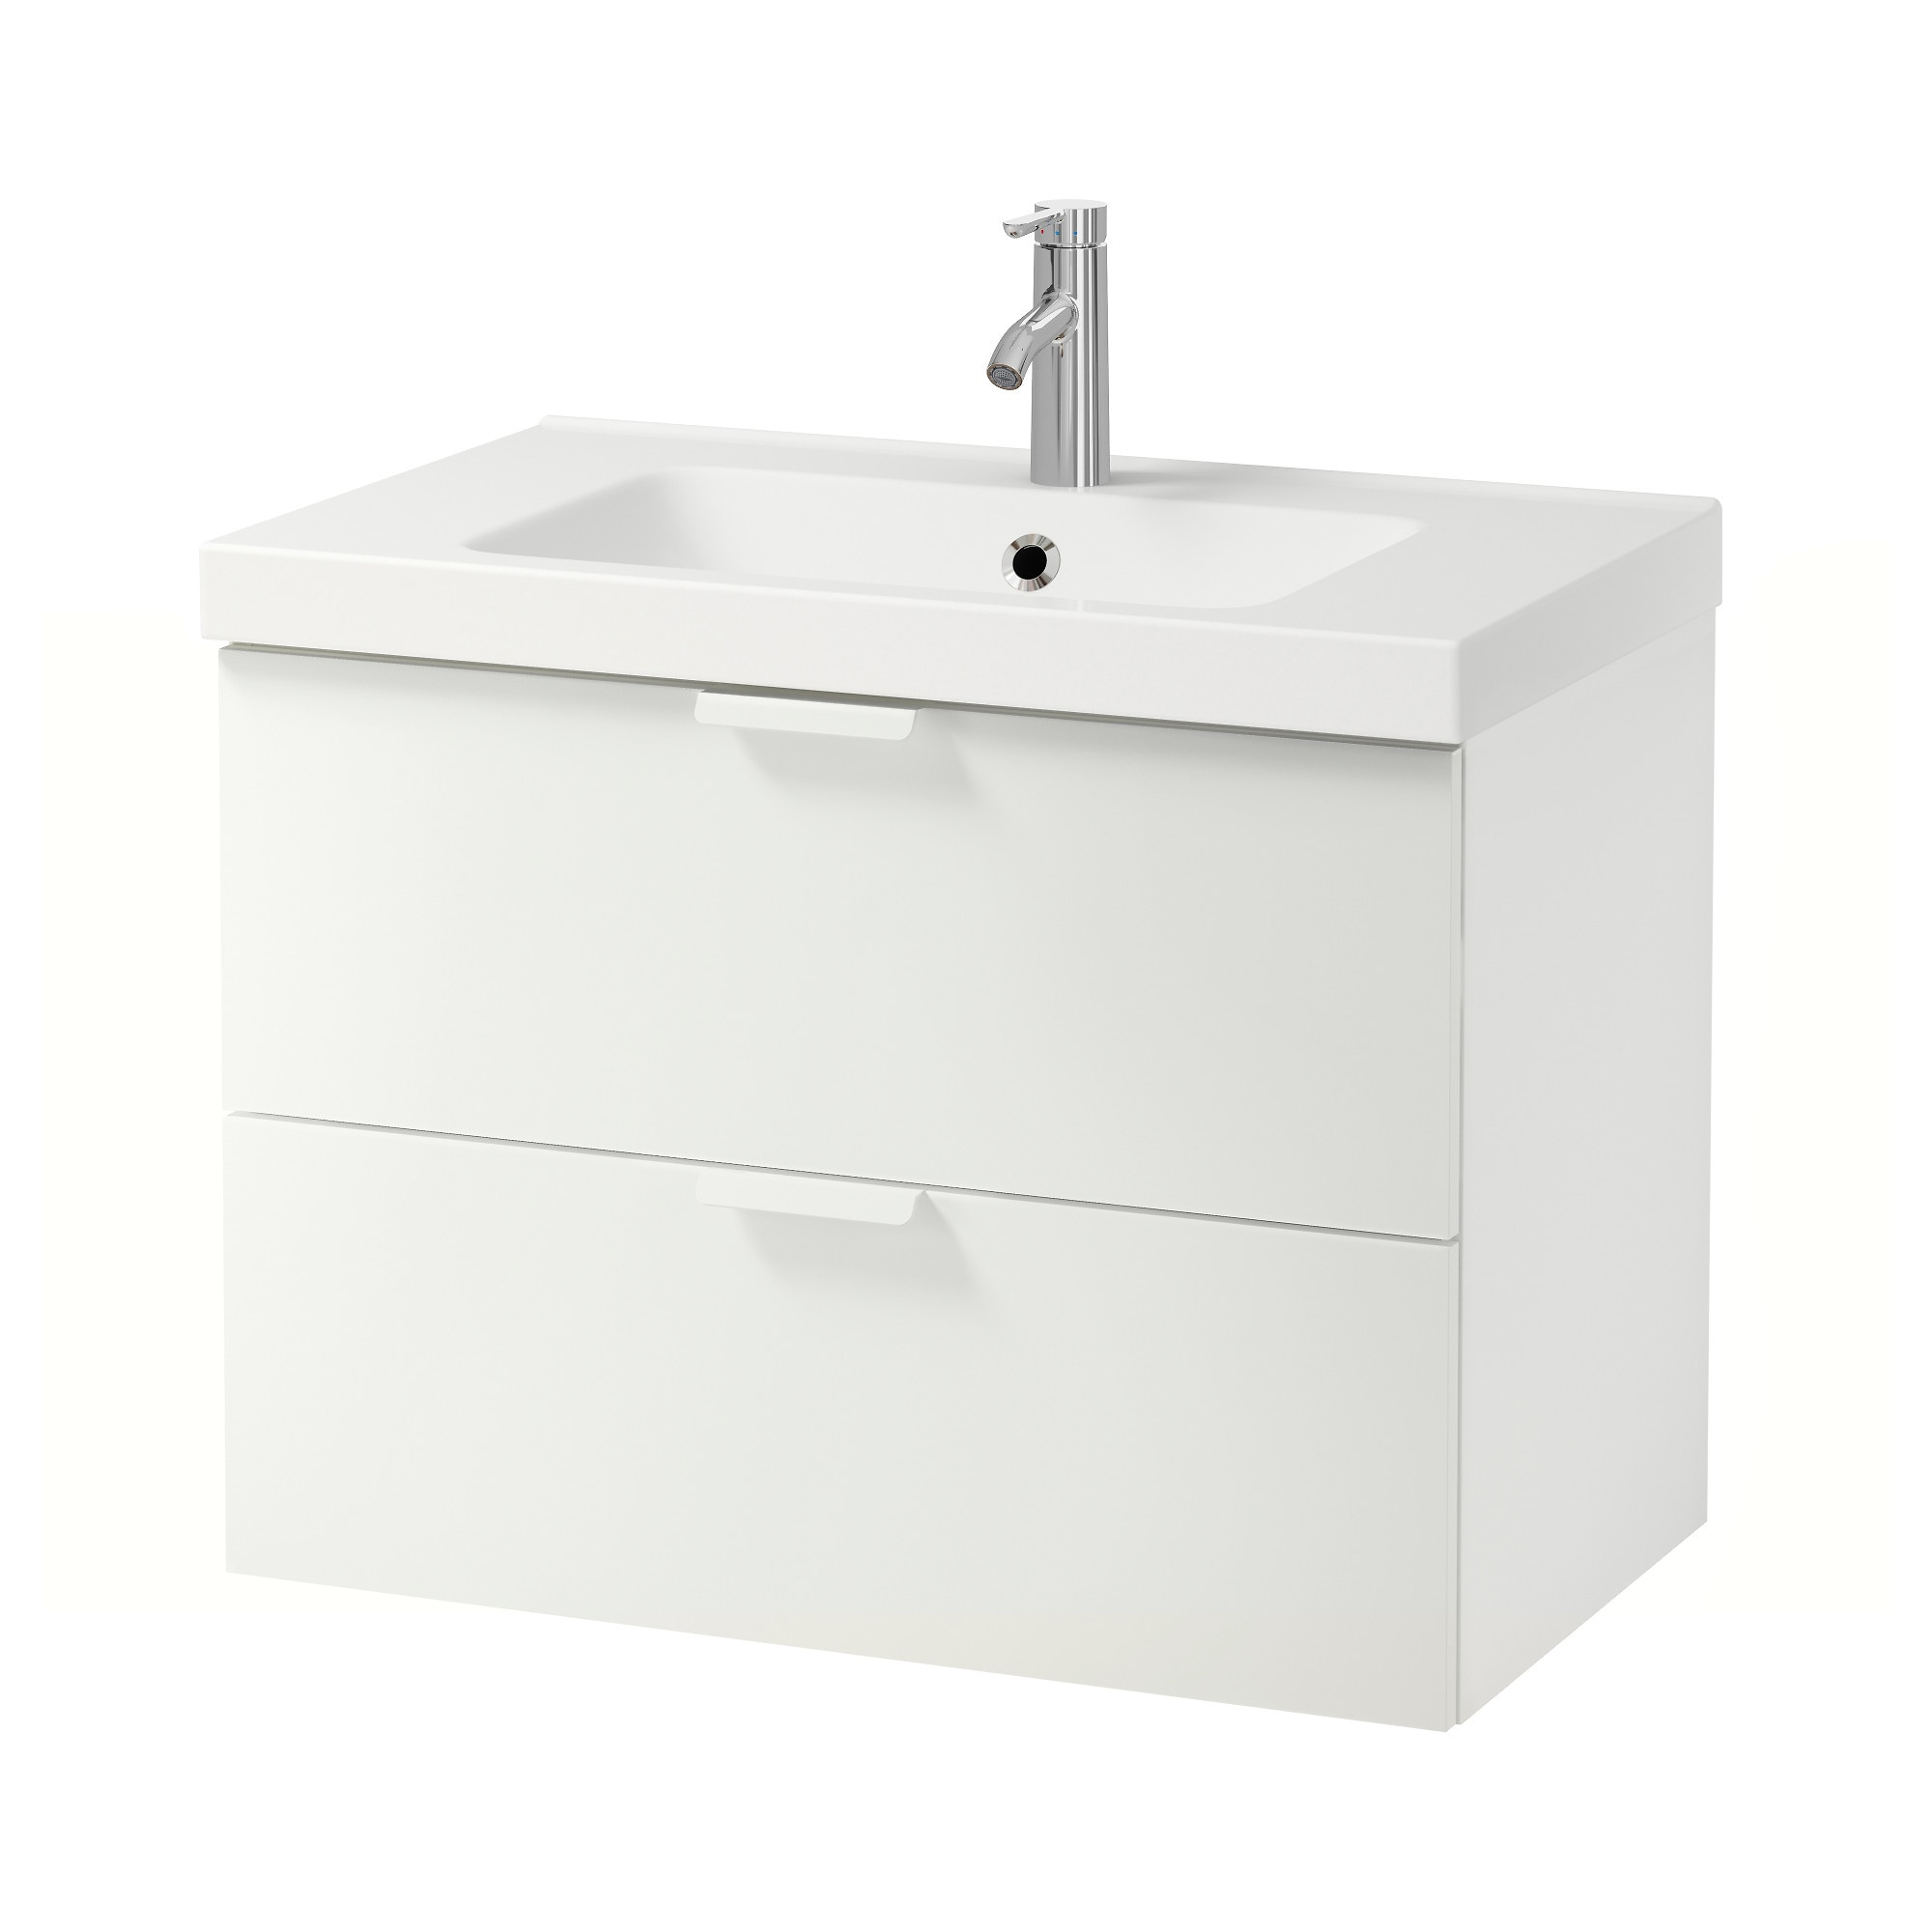 GODMORGON ODENSVIK Sink cabinet with 2 drawers white 31 1